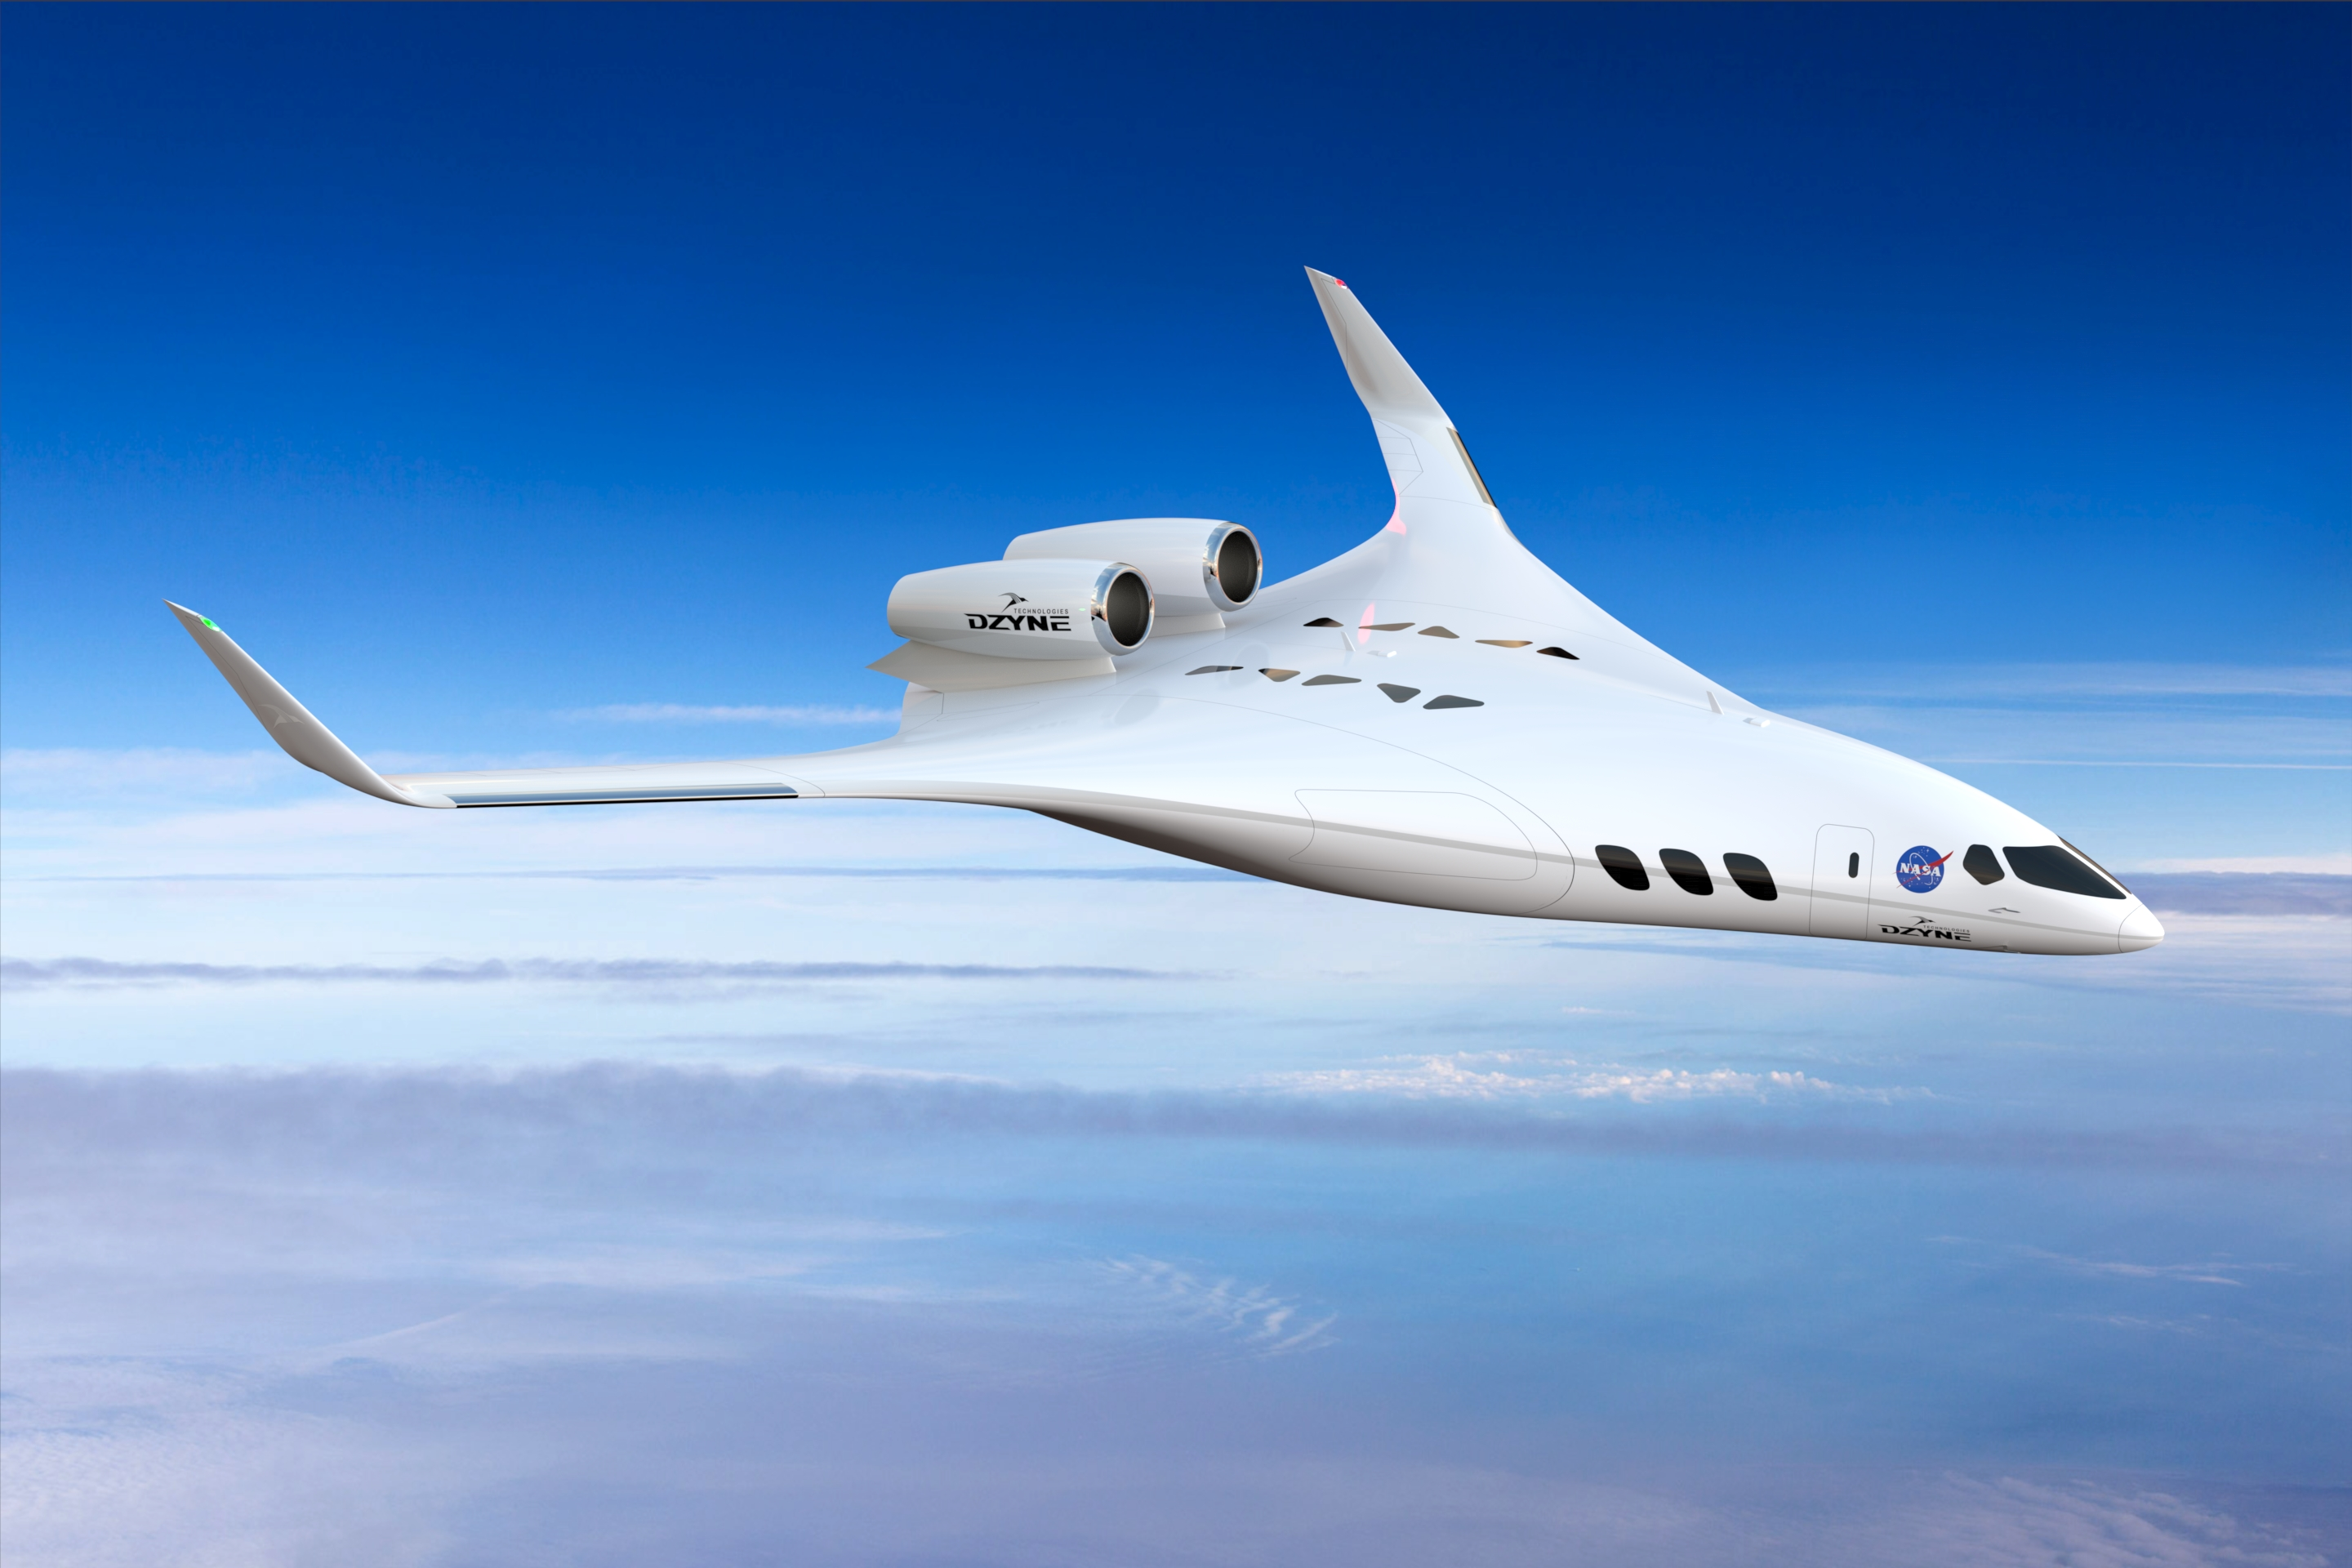 With the recent advances in technology and design aircraft concepts - Dzyne Technologies Regional Sized Blended Wing Body Design Concept